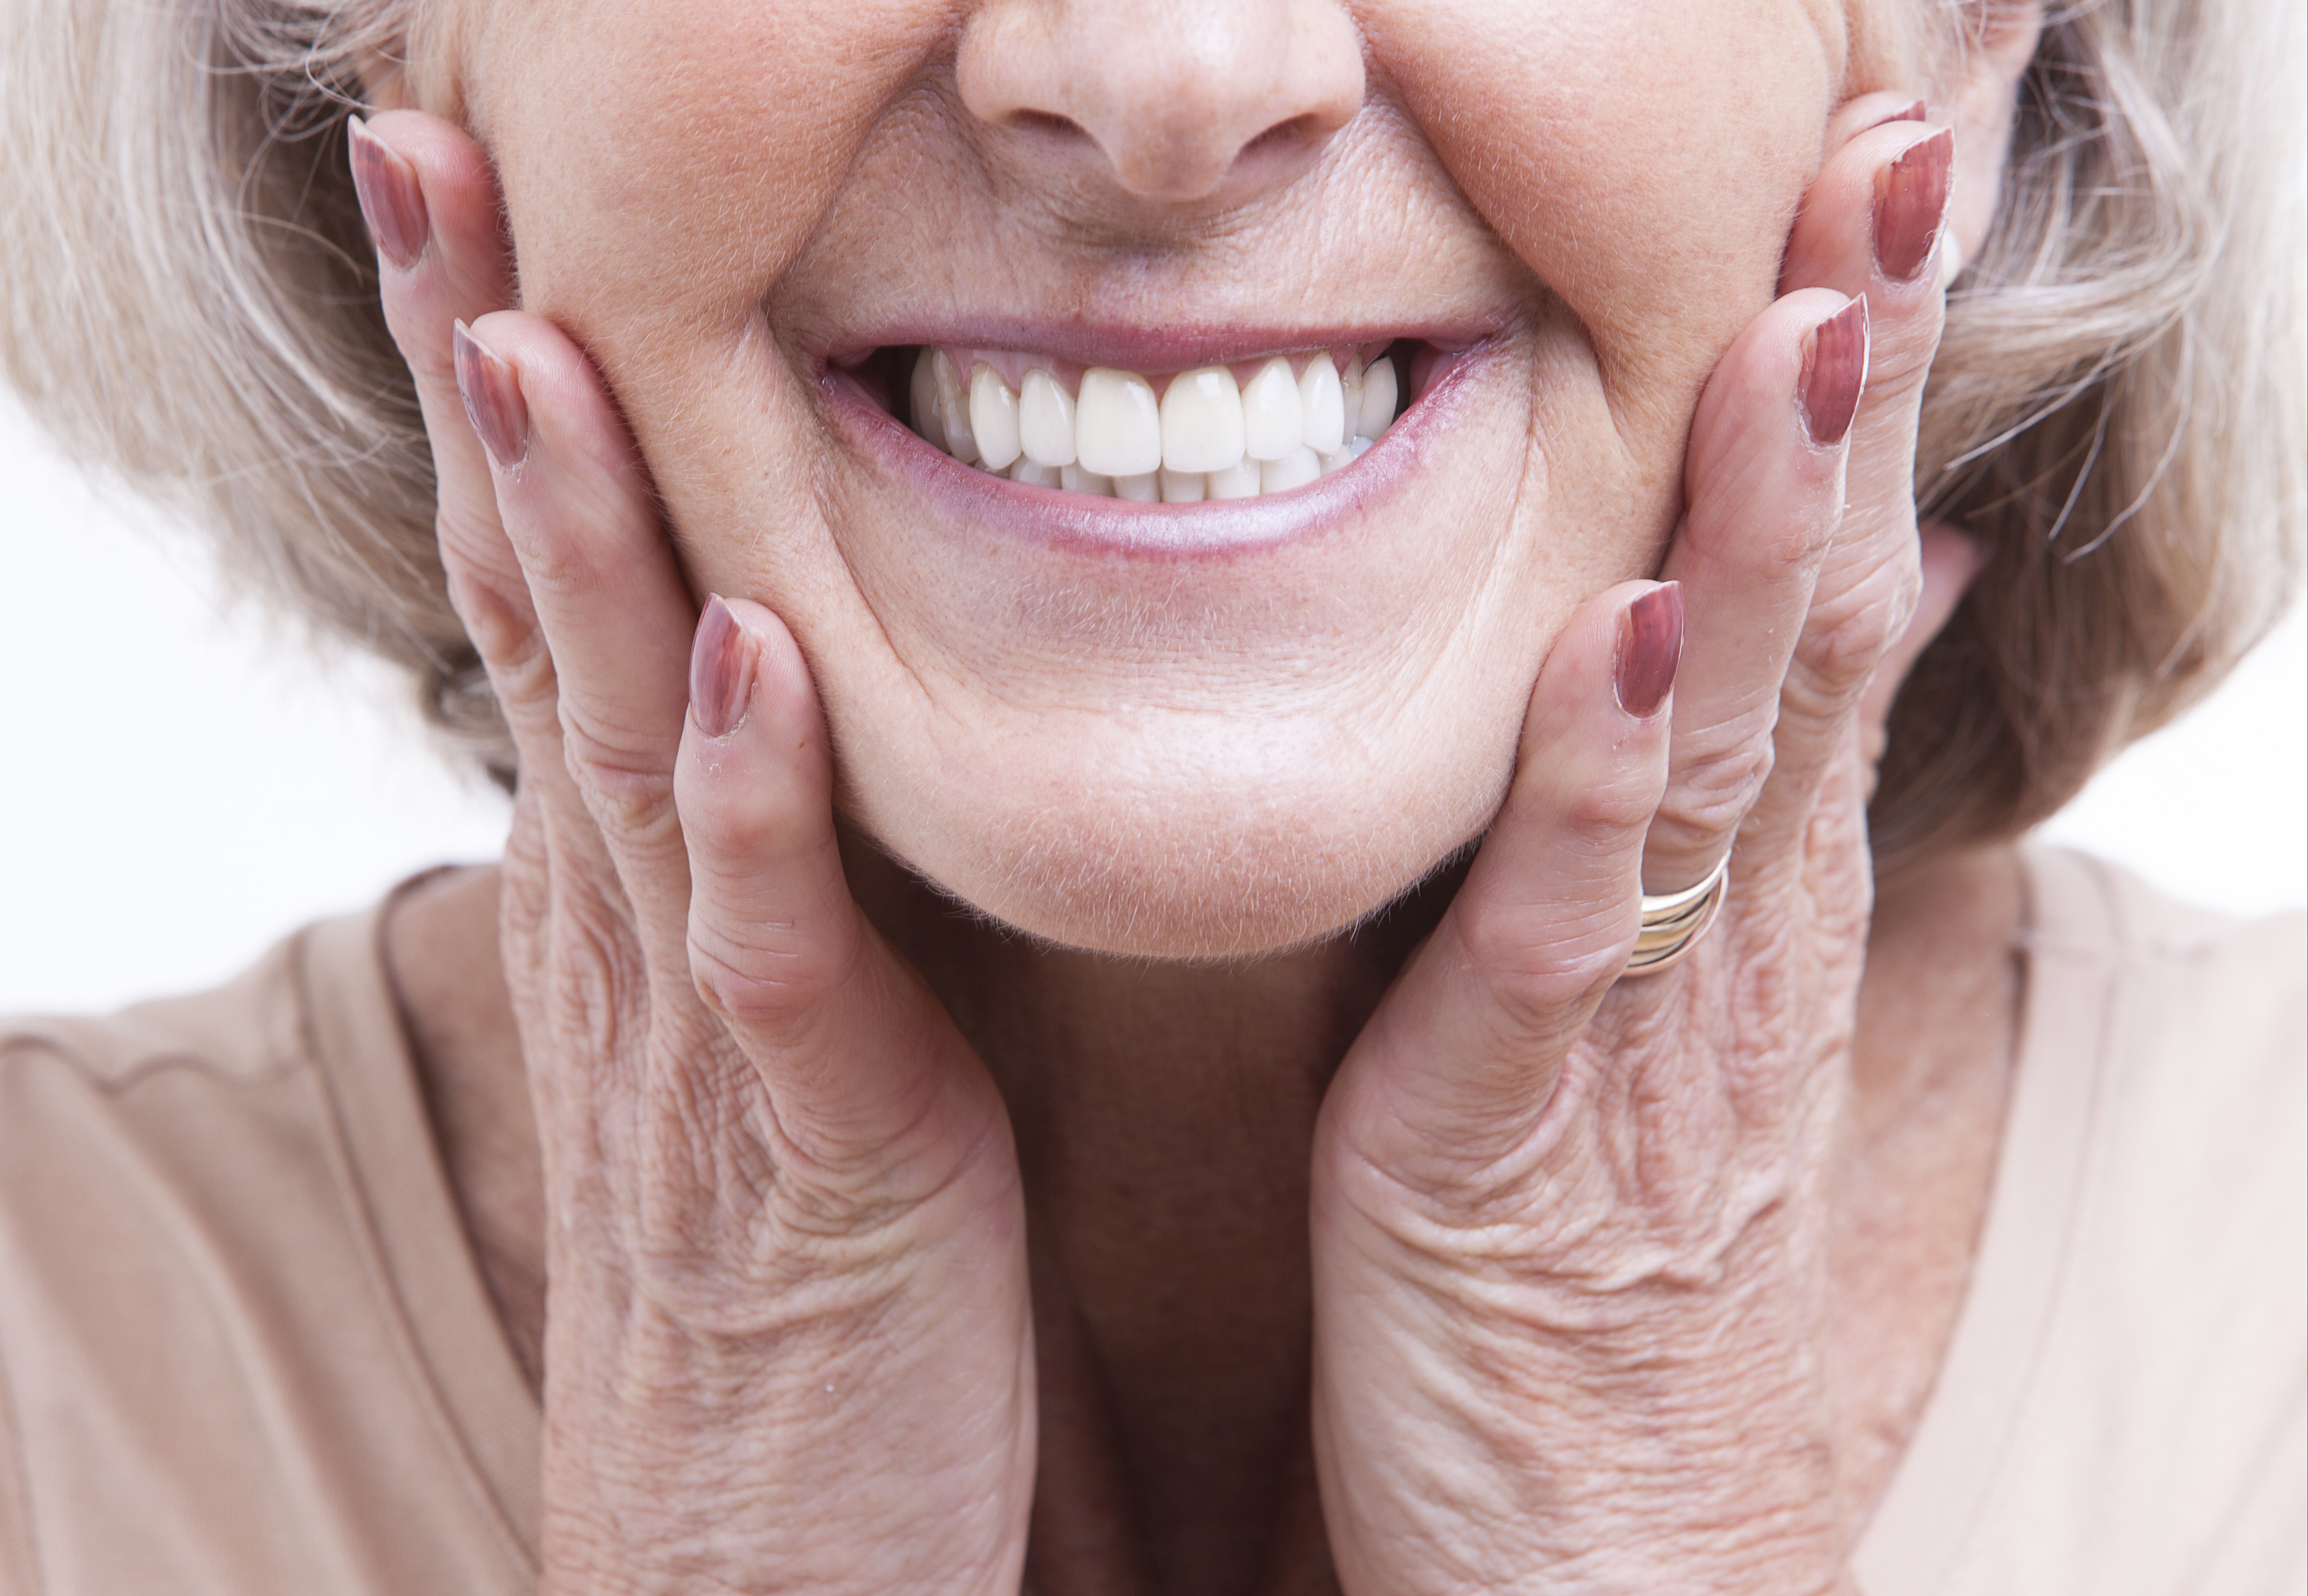 where is a good tooth extraction west palm beach?